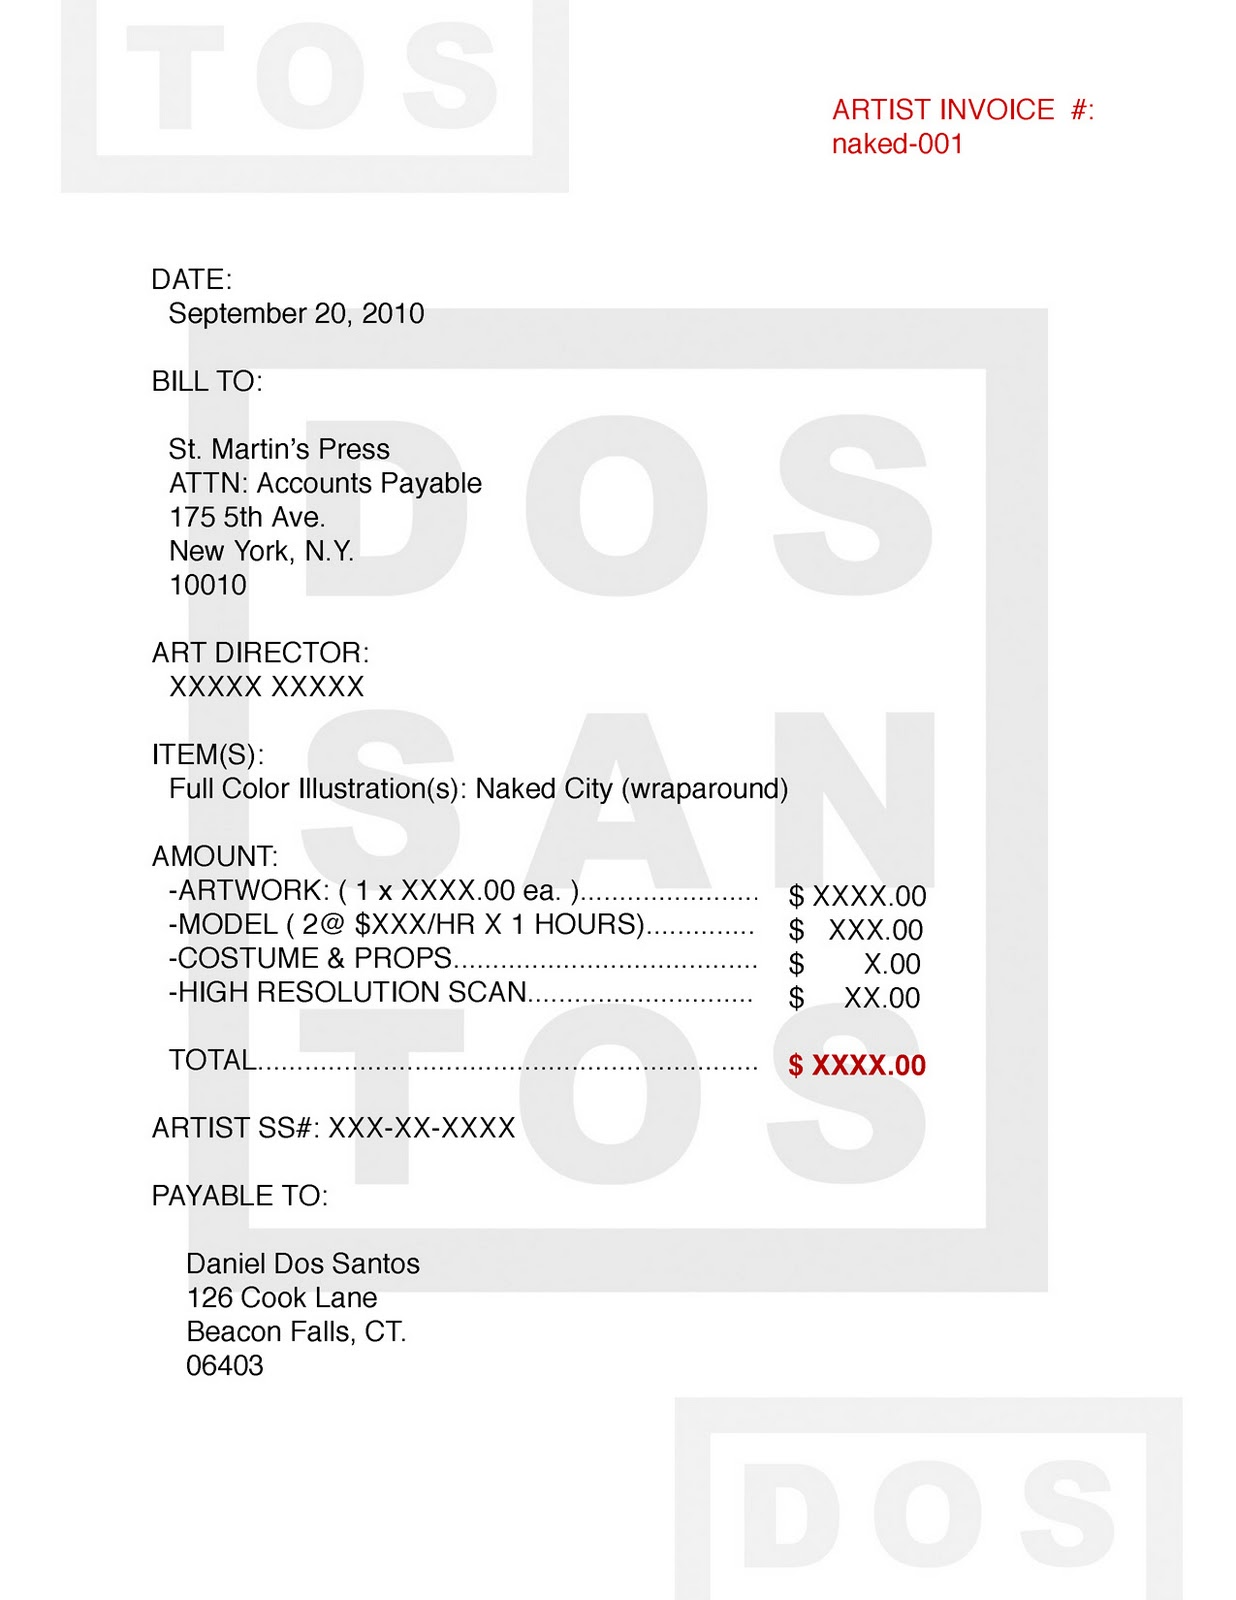 Totallocalus  Unusual Muddy Colors Invoices With Heavenly I Believe That This Format Contains All The Pertinent Information That A Good Invoice Should Have And Can Serve As A Decent Template For Your Own With Attractive Best Free Invoice App Also Pre Invoice In Addition Invoice Mean And Invoice Free Download As Well As Medical Invoice Template Word Additionally Ebay Invoice Template From Muddycolorsblogspotcom With Totallocalus  Heavenly Muddy Colors Invoices With Attractive I Believe That This Format Contains All The Pertinent Information That A Good Invoice Should Have And Can Serve As A Decent Template For Your Own And Unusual Best Free Invoice App Also Pre Invoice In Addition Invoice Mean From Muddycolorsblogspotcom